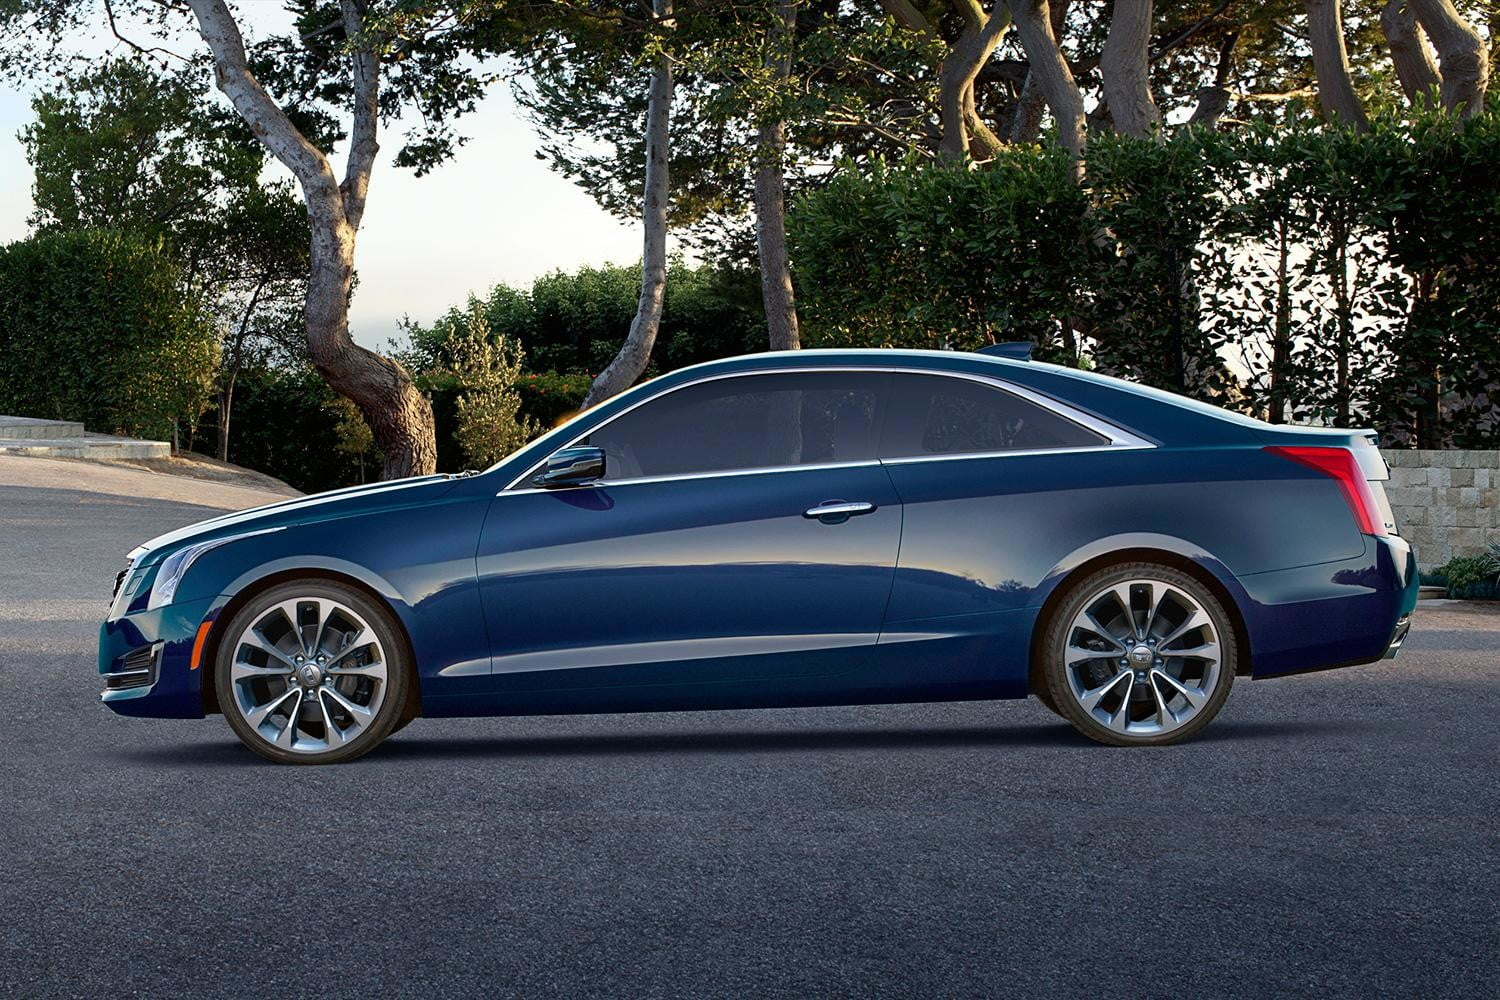 2015 Cadillac ATS Coupe news left blue